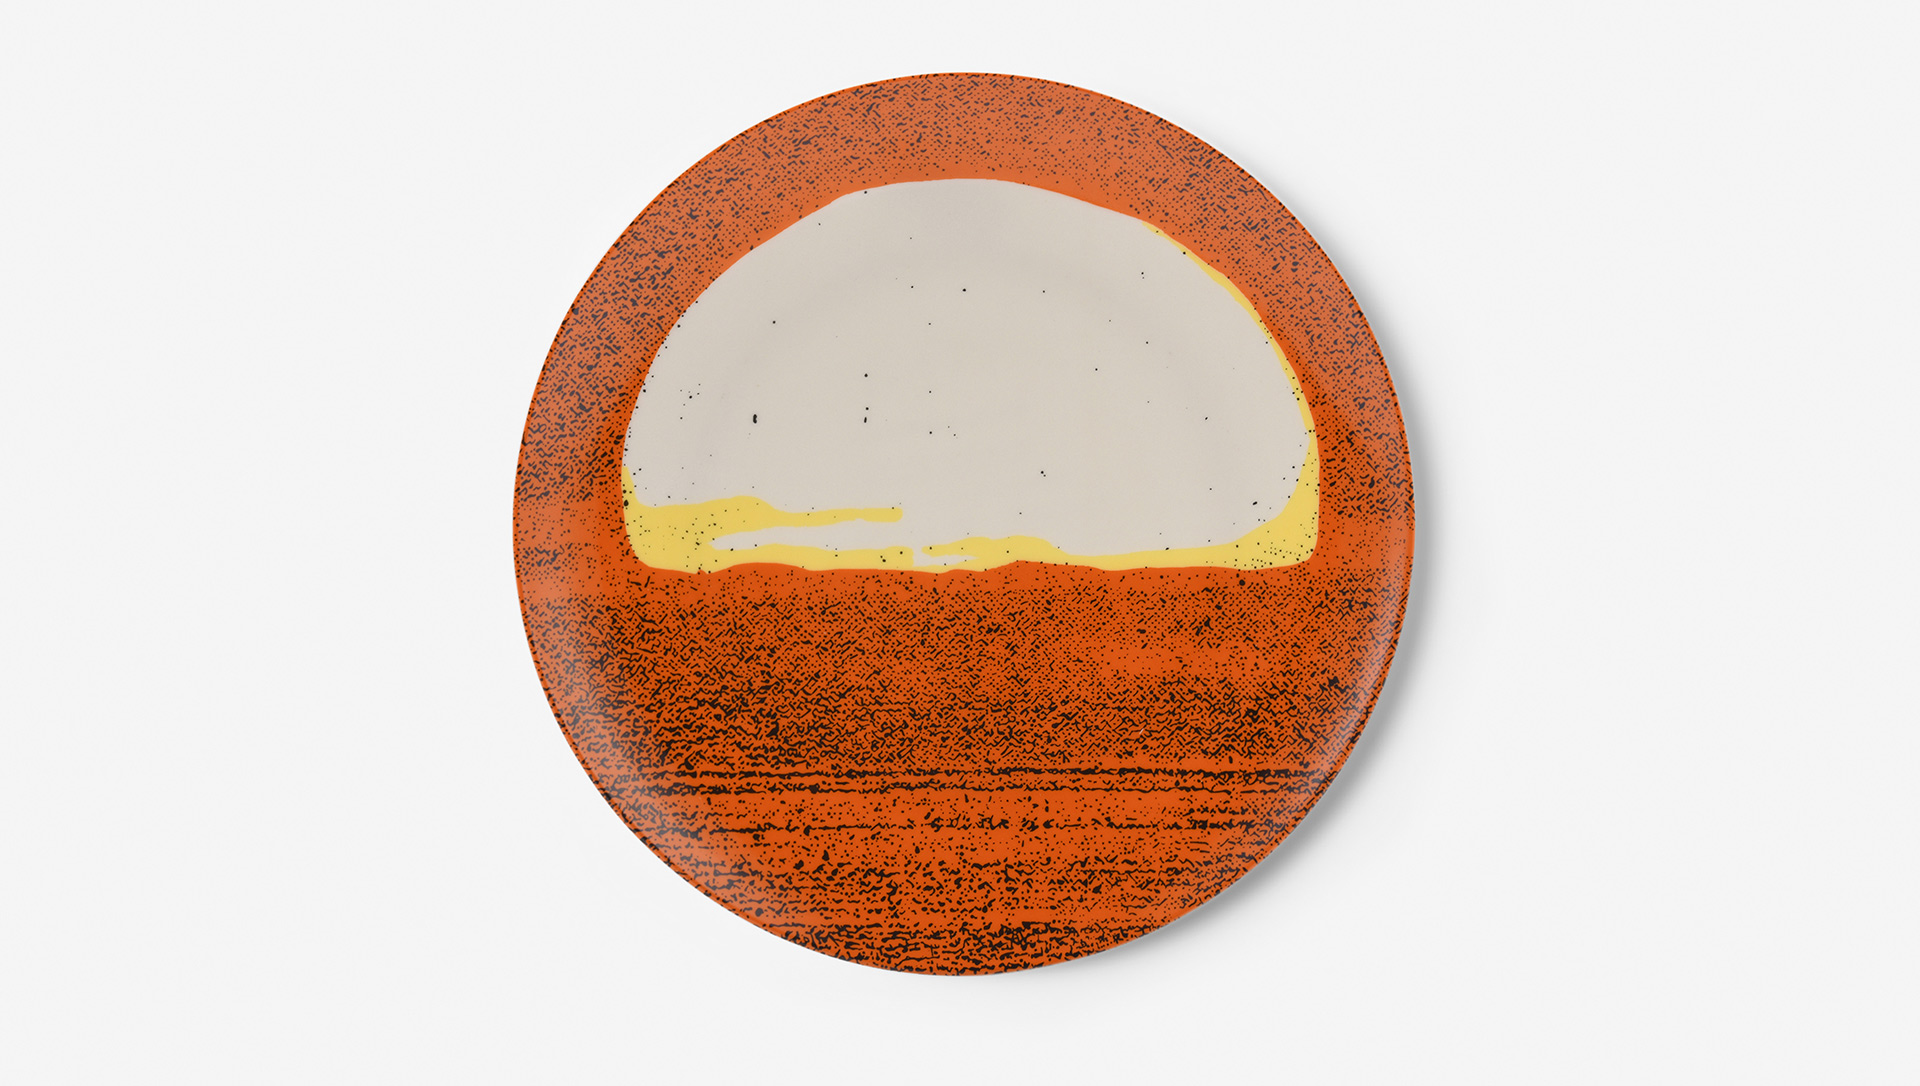 A limited edition plate by Nate Lowman, titled Blaze of Glory (Pantone Variation), dated 2012/2020.